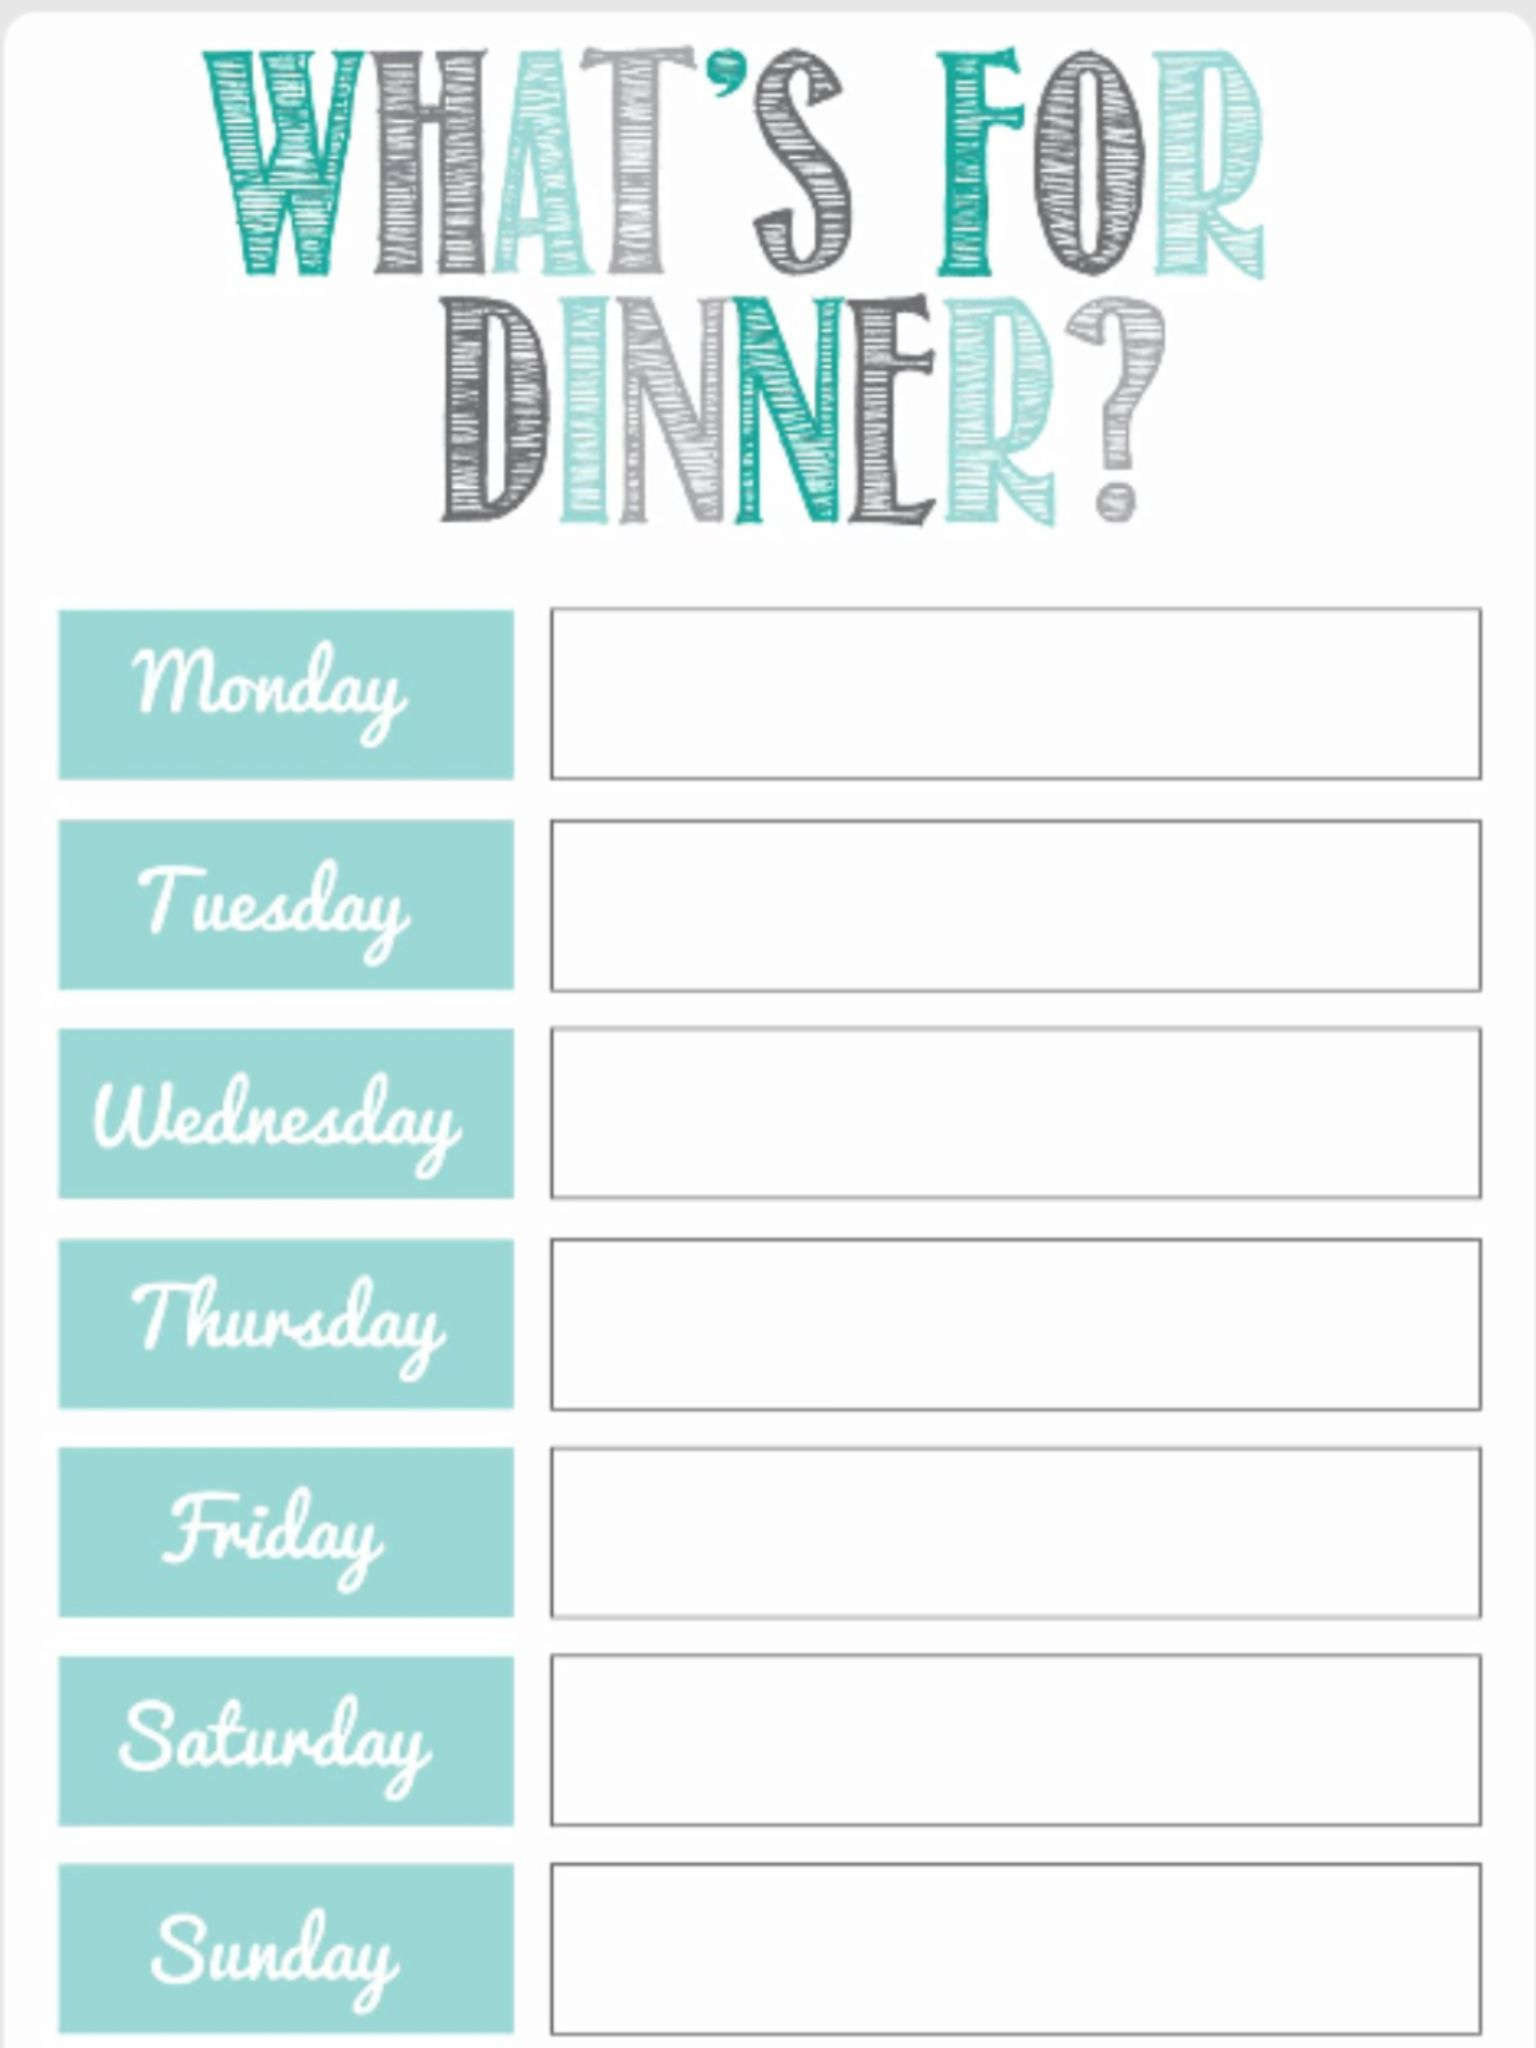 Dinner Free Meal Plan Template  Worksheet Planner For Weight Los ExcelFull